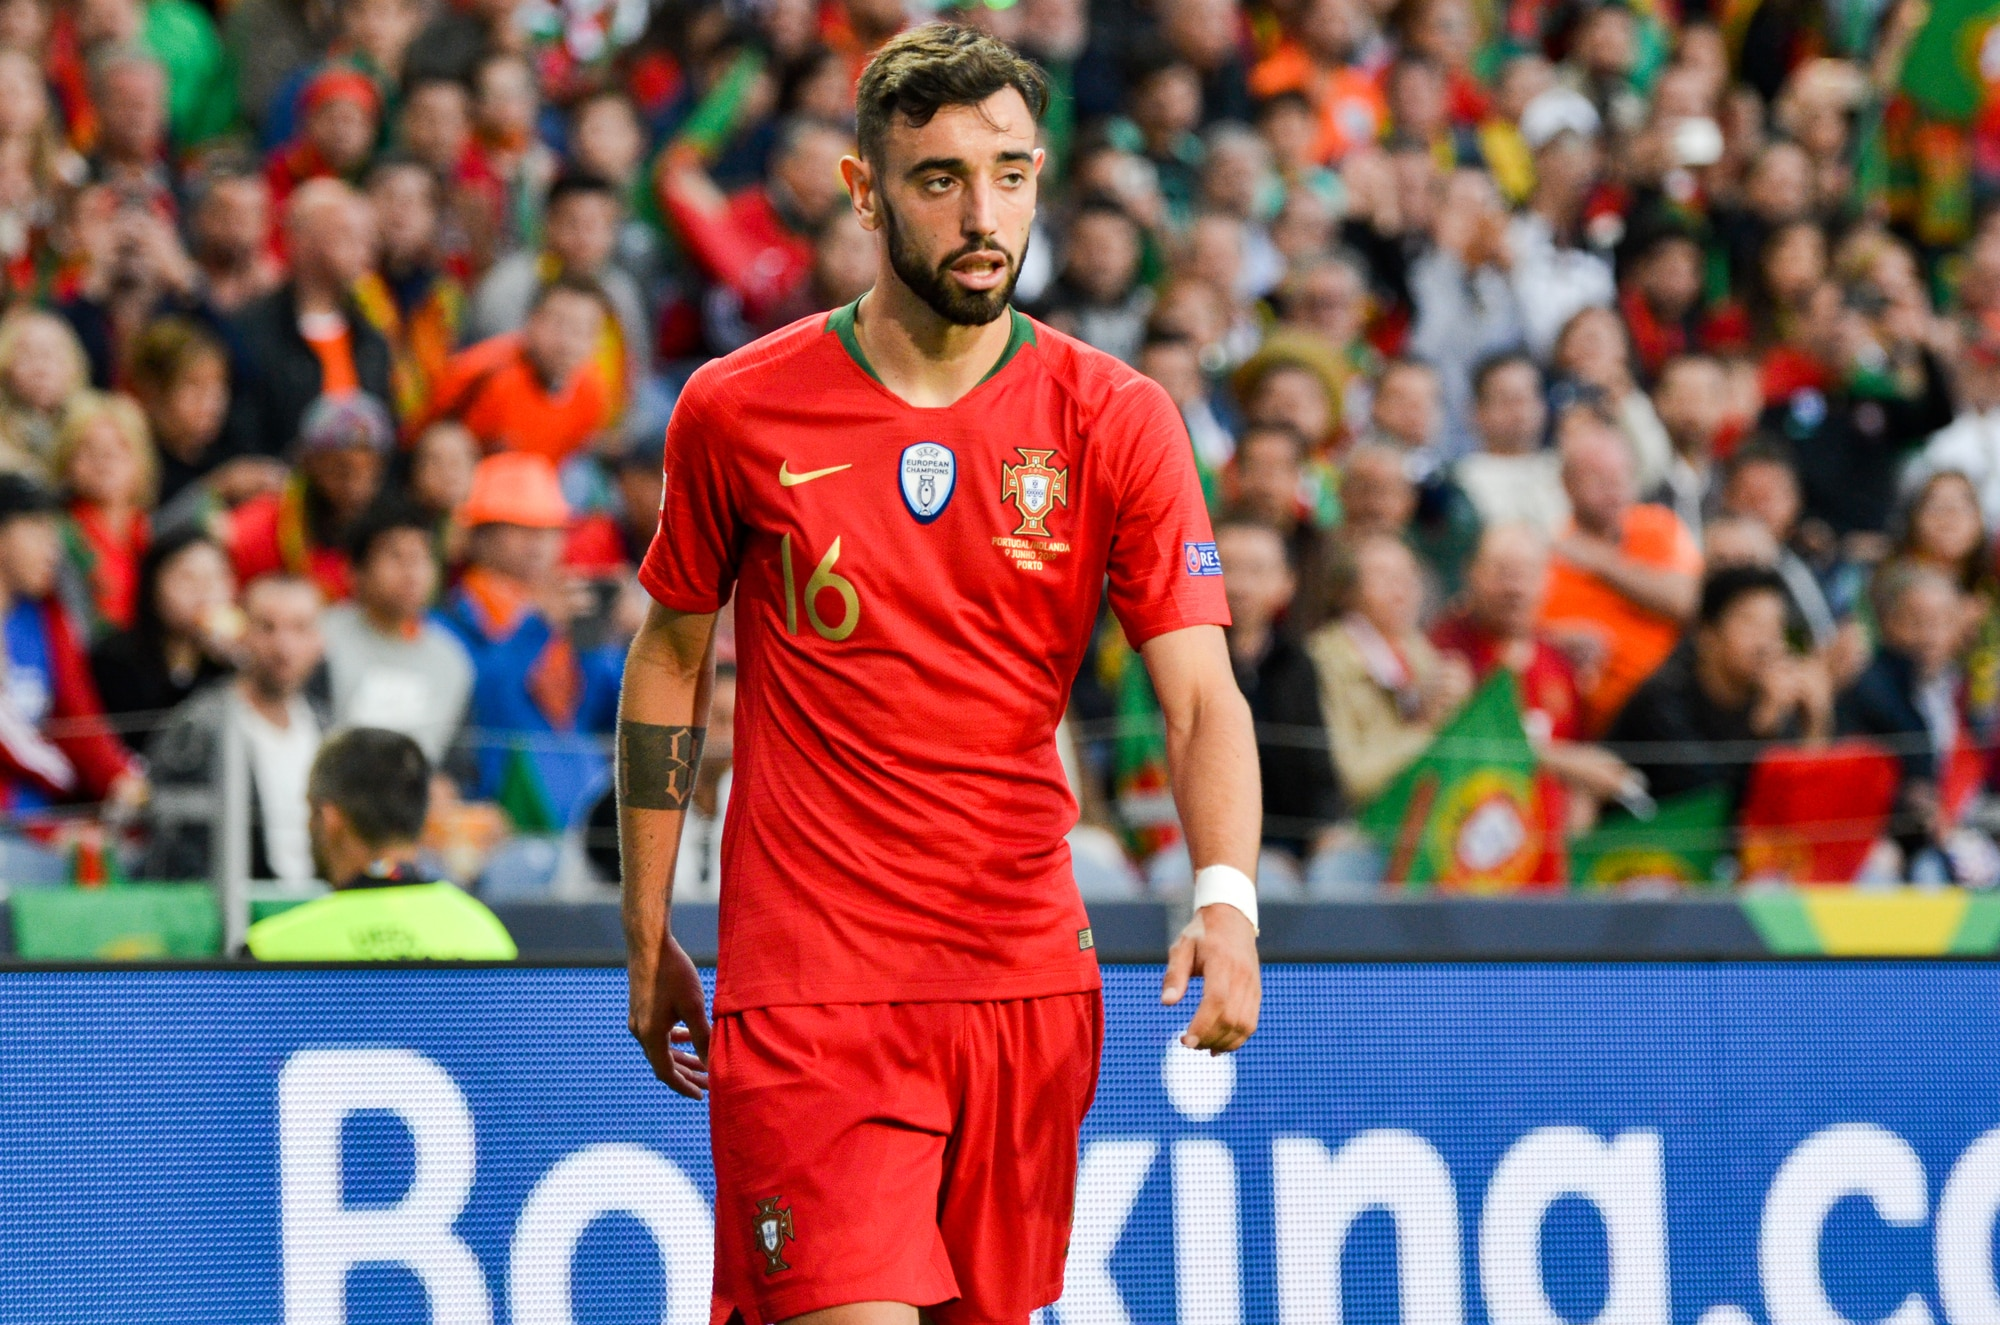 Bruno Fernandes will be playing in the Manchester Utd game